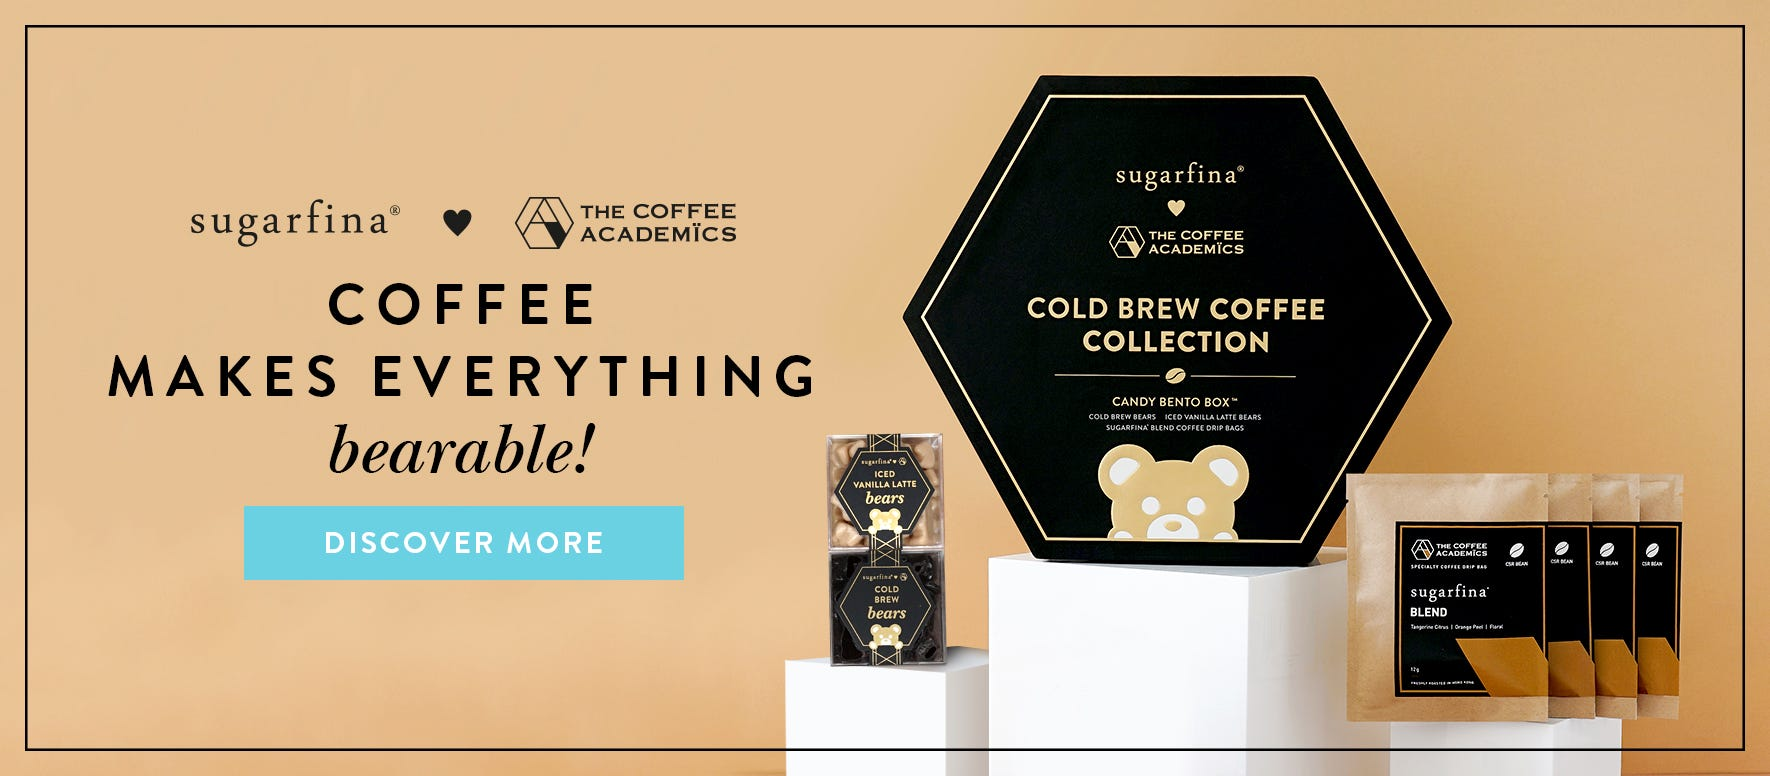 The Cold Brew Collection